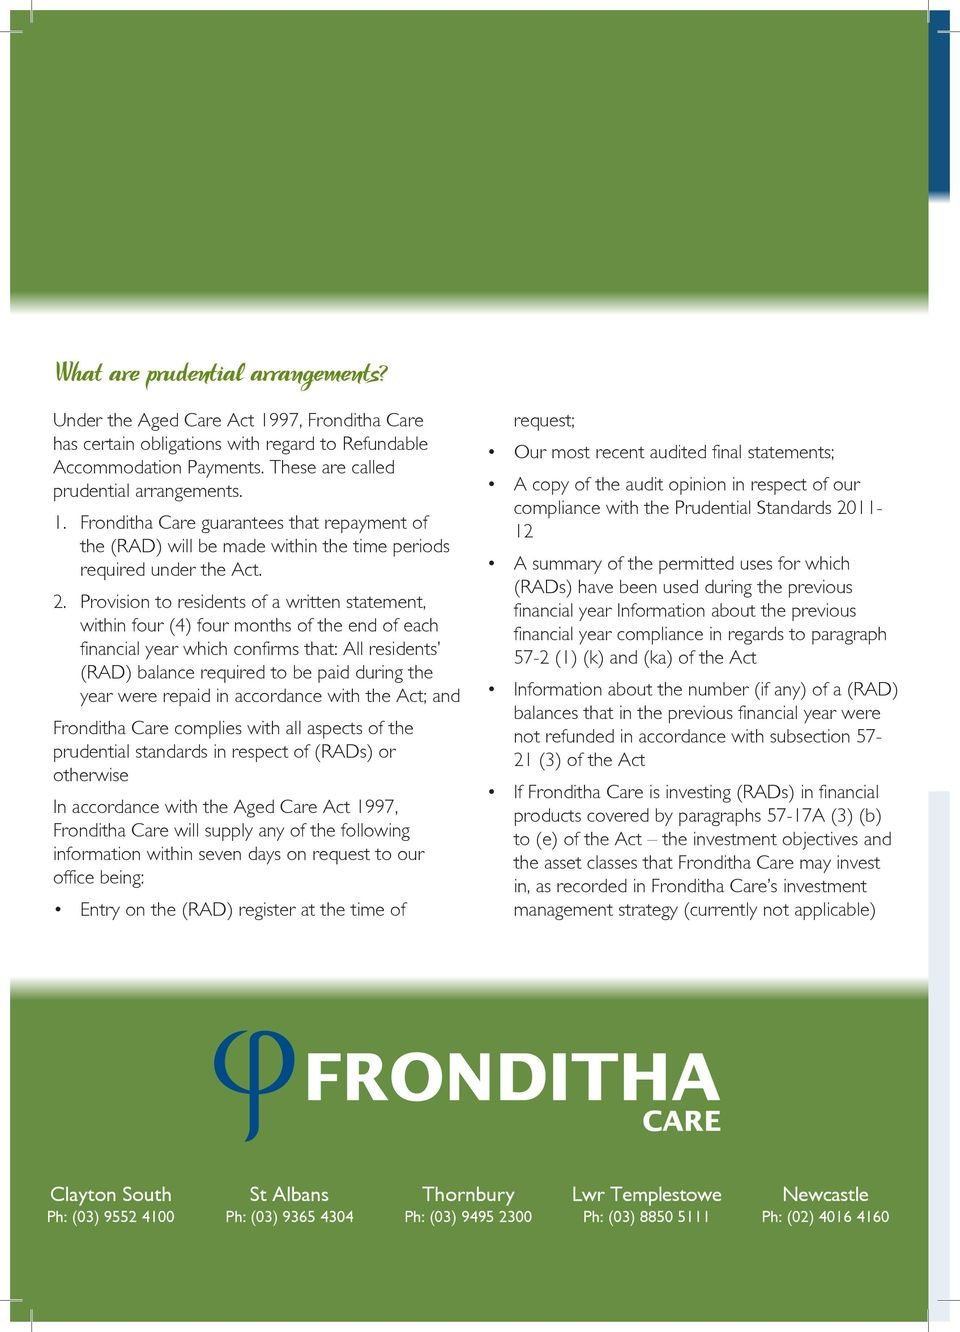 were repaid in accordance with the Act; and Fronditha Care complies with all aspects of the prudential standards in respect of (RADs) or otherwise In accordance with the Aged Care Act 1997, Fronditha